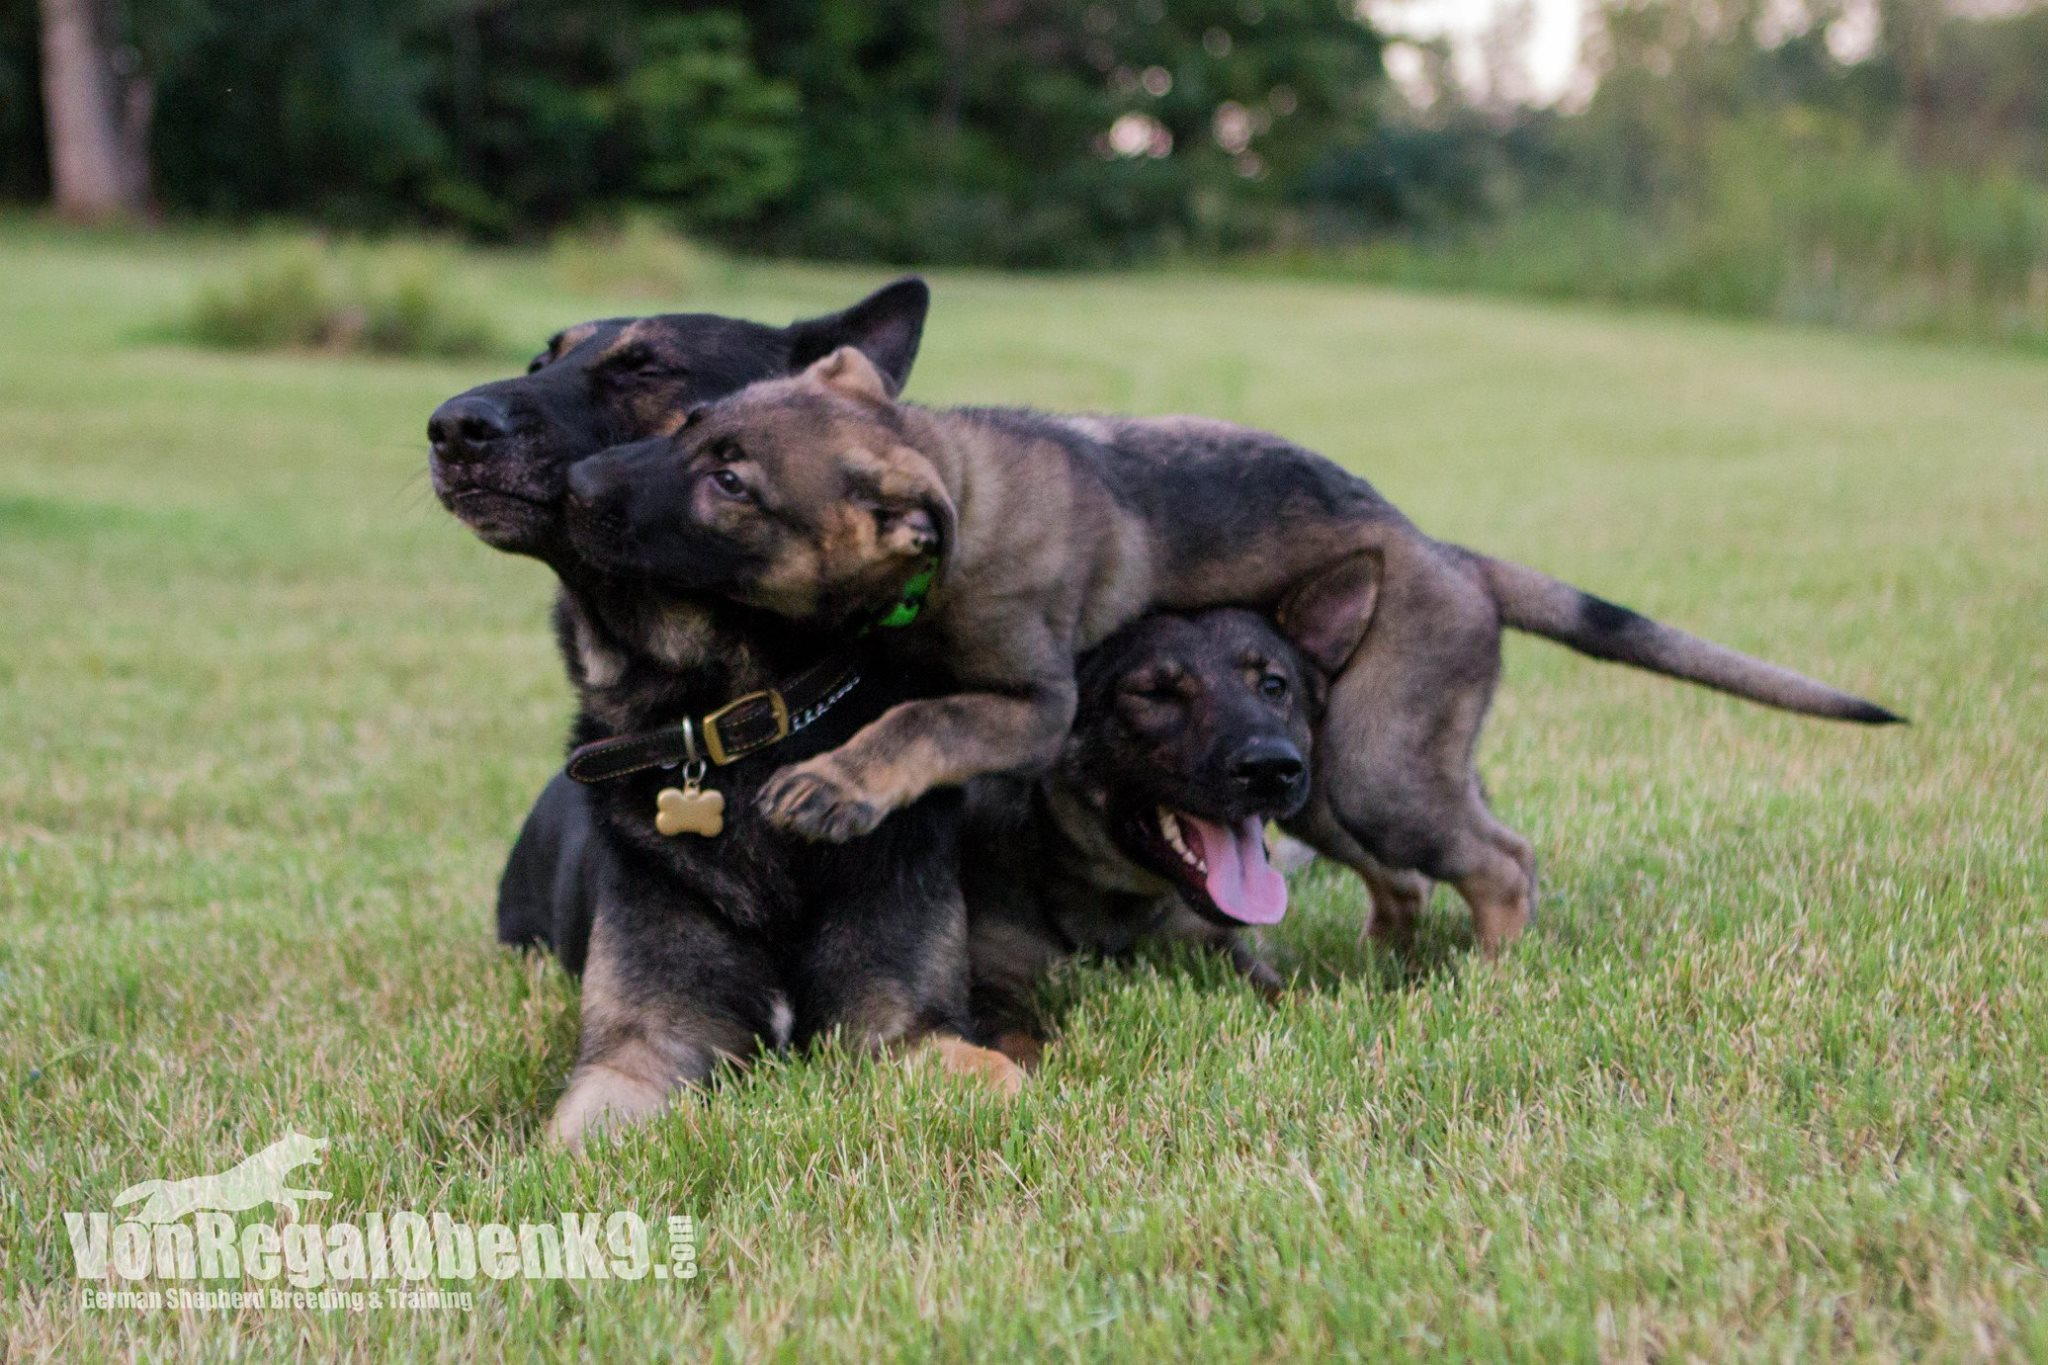 Karma, Jonas, and their puppy Banjo.